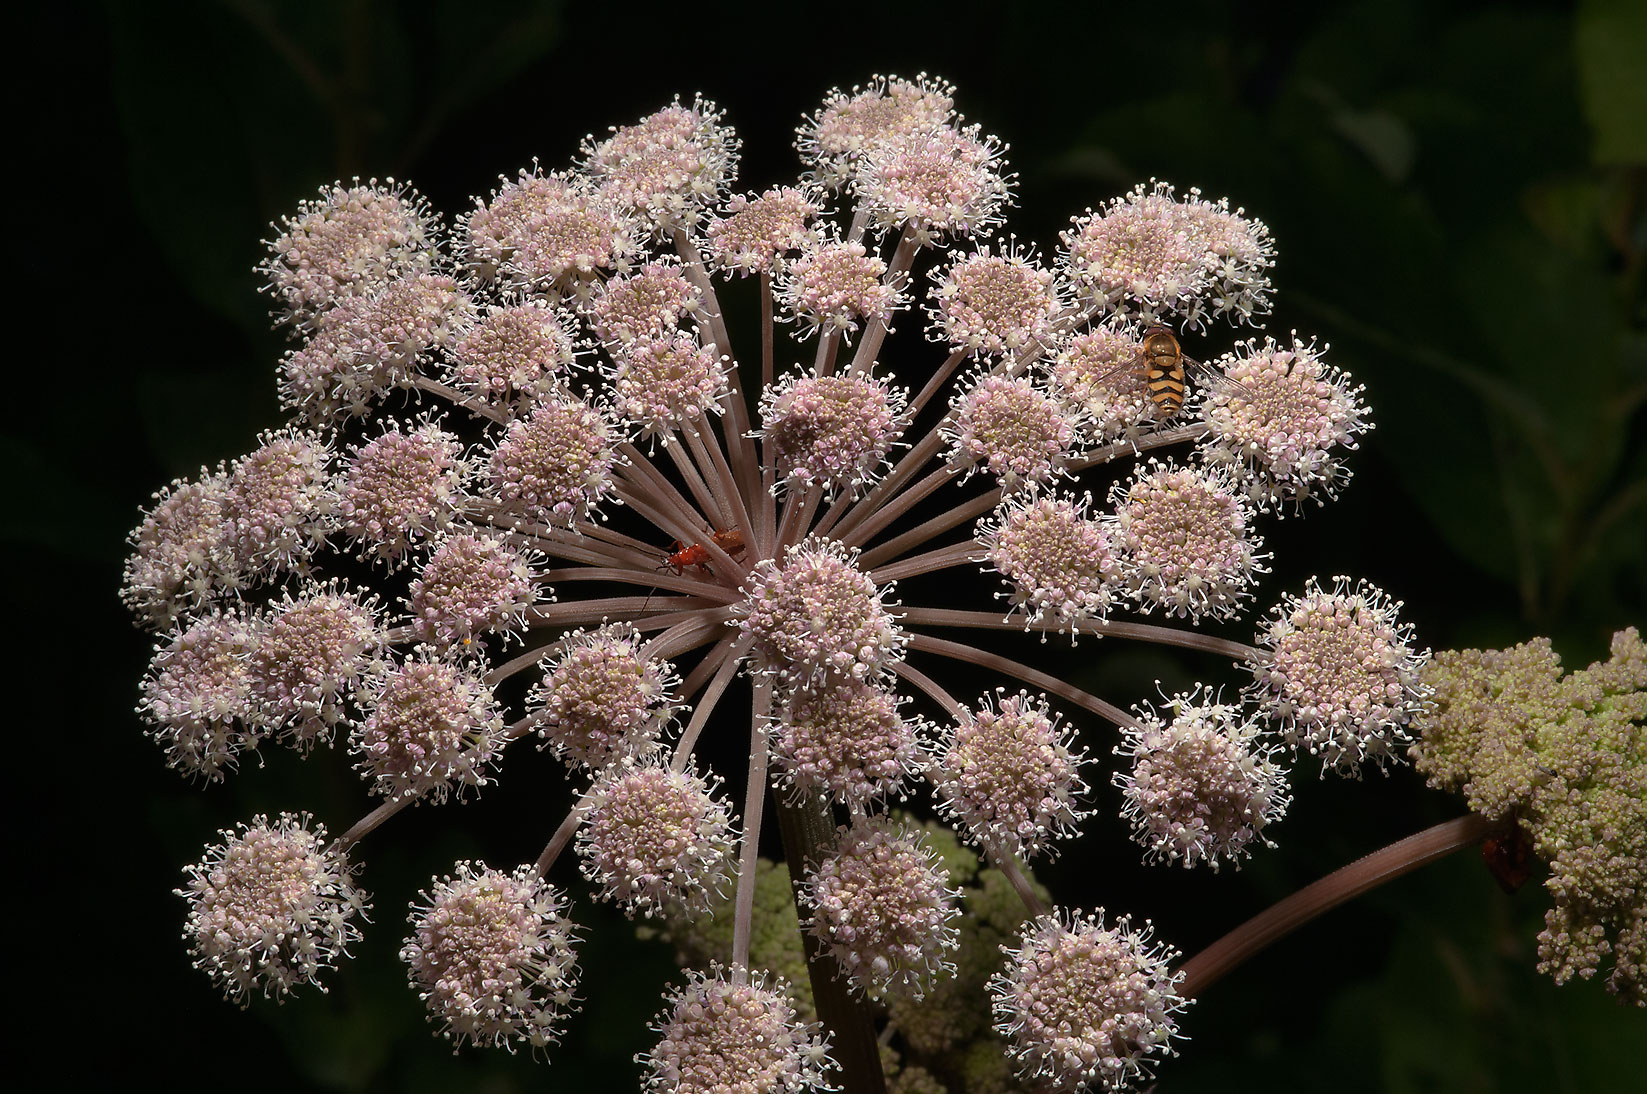 Umbels of flowers of Angelica sylvestris (Russian...from Deviatkino. St.Petersburg, Russia